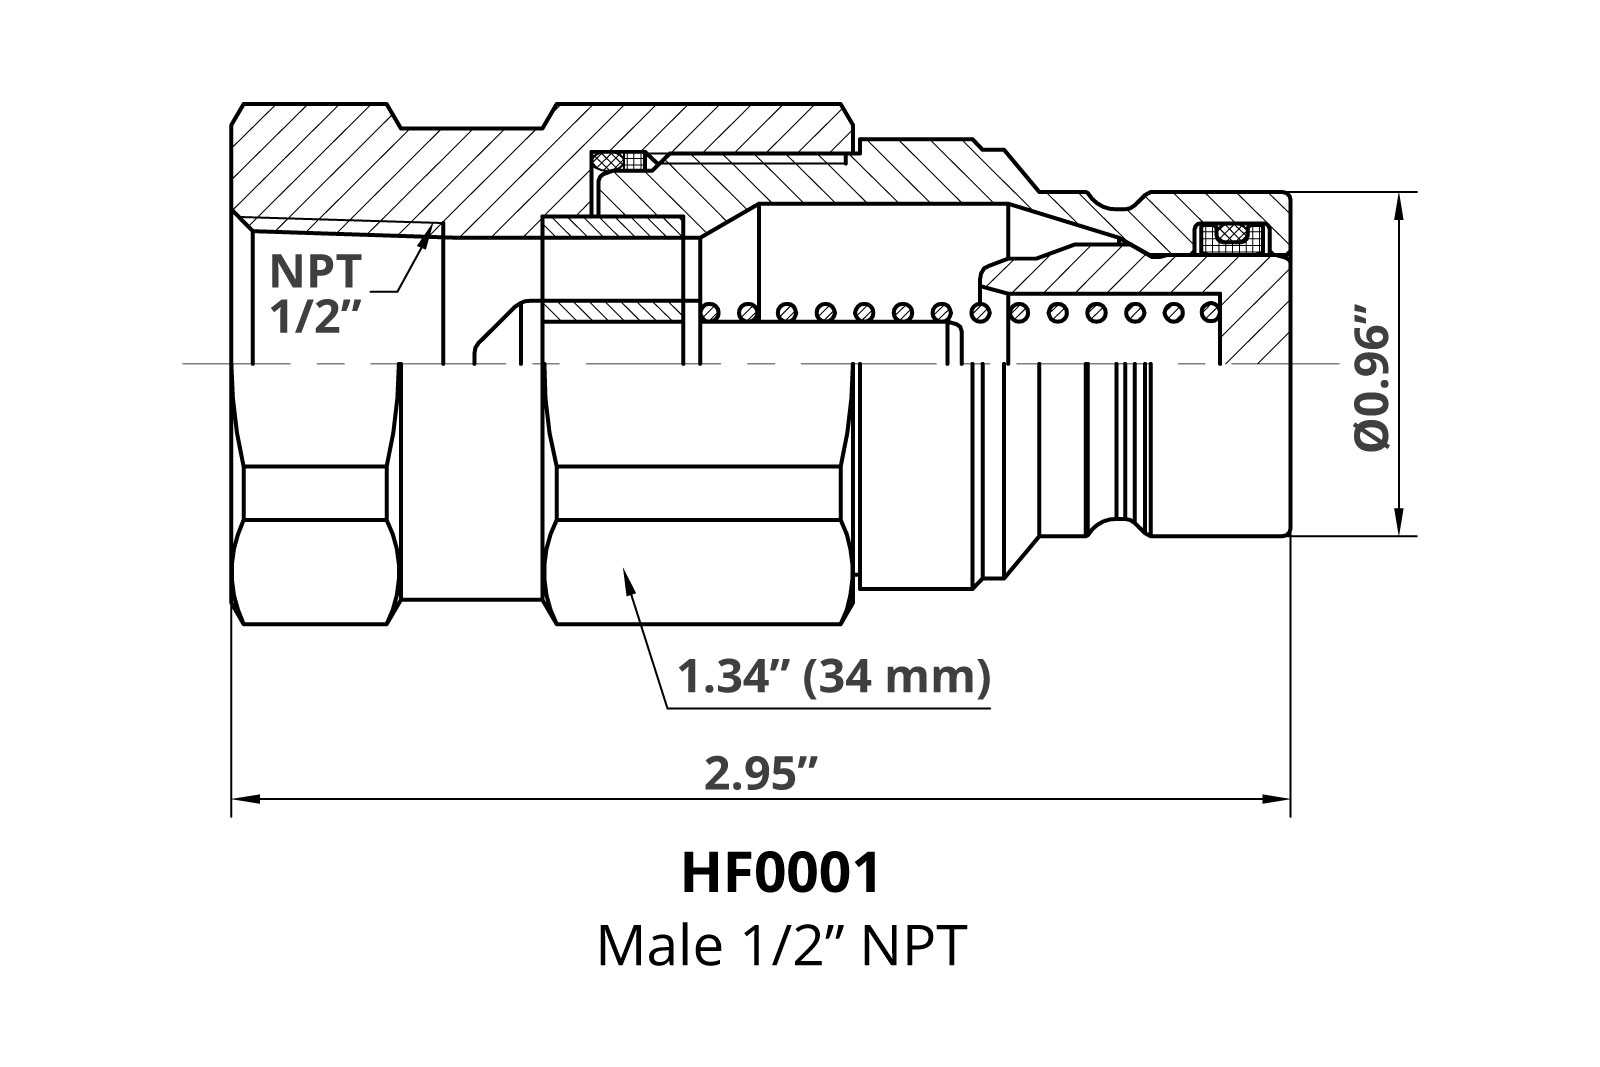 hight resolution of 12x 1 2 npt male hydraulic flat face quick coupler skid steer 763 bobcat bobcat face diagram just wiring